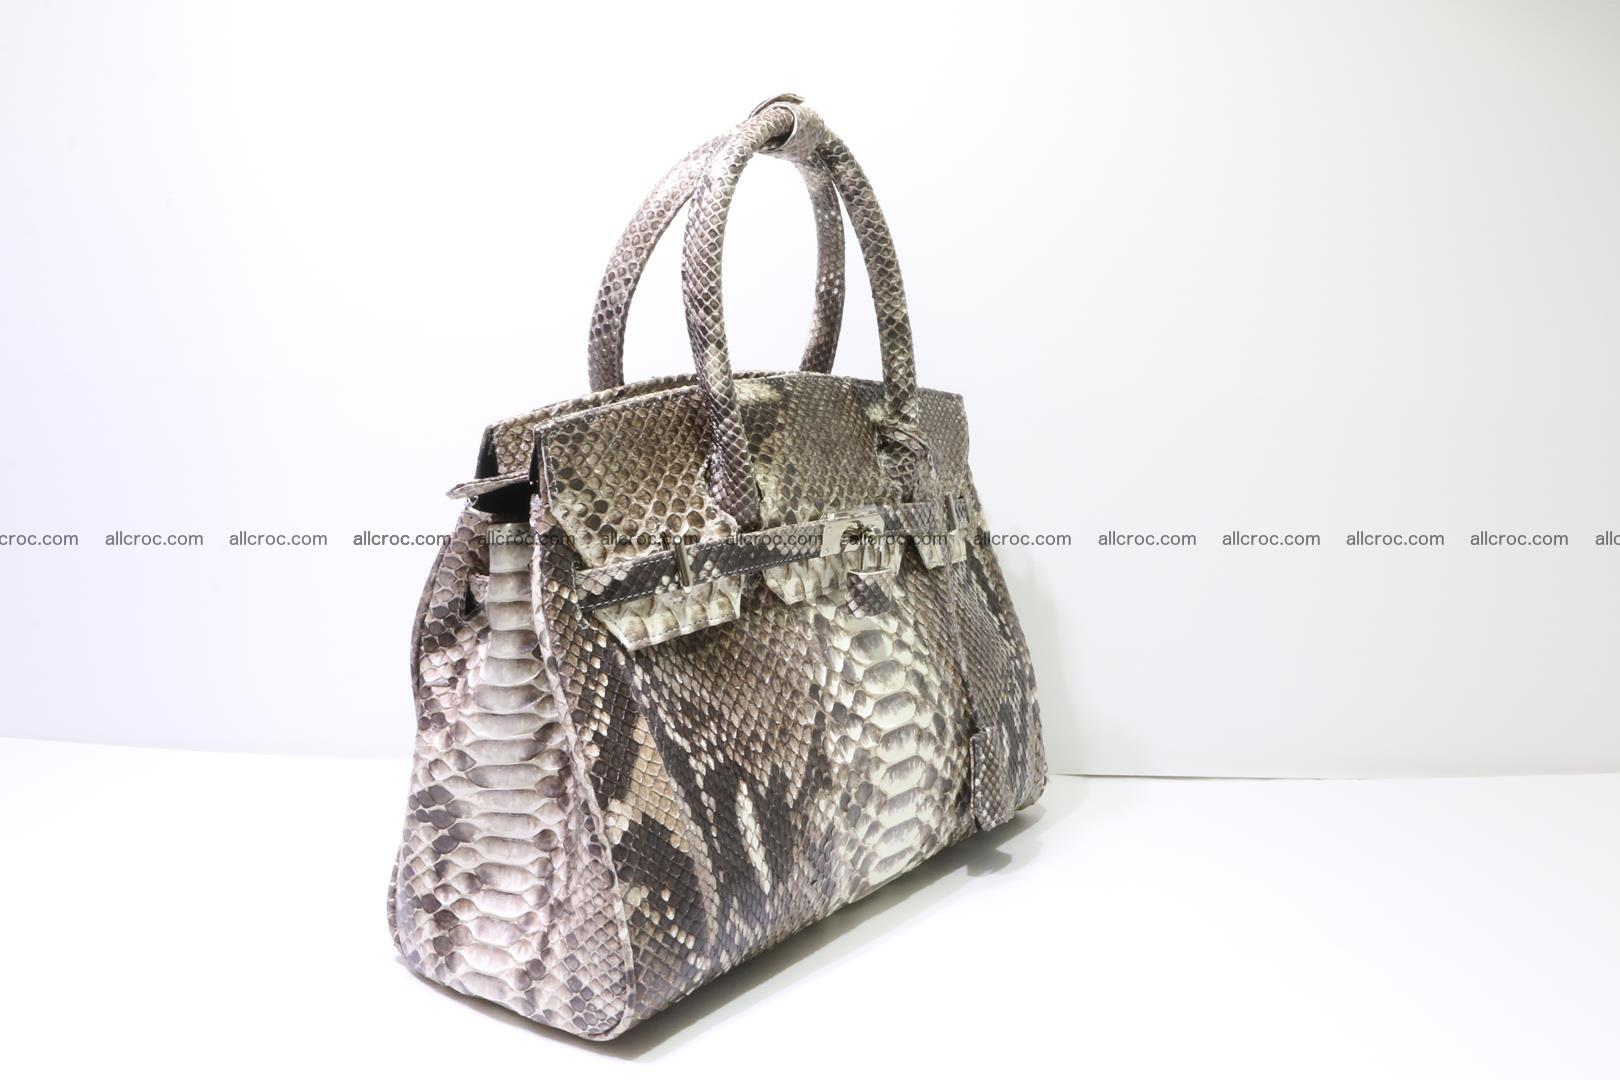 Python skin women's handbag replica of Birkin 211 Foto 1